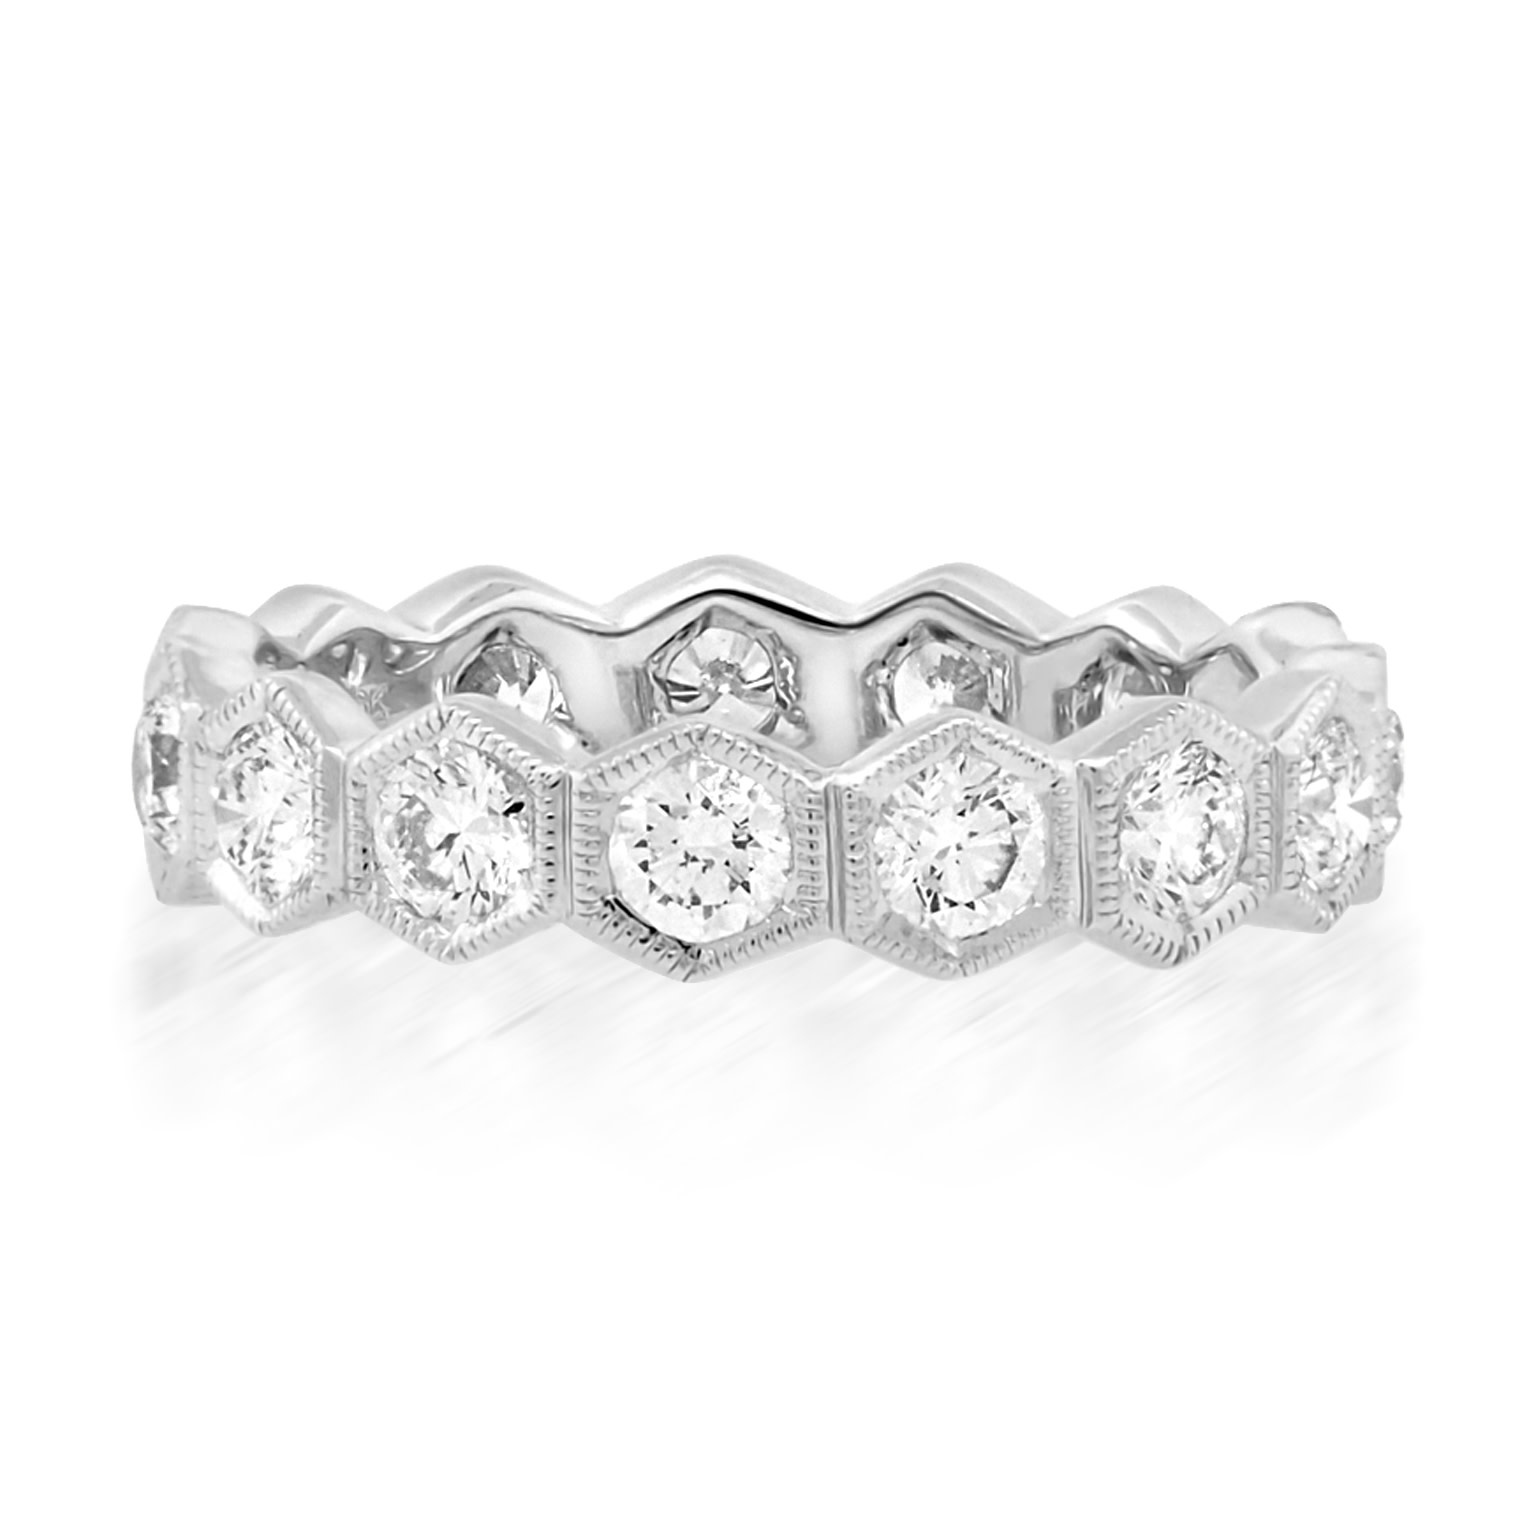 Beverley K Collection Wide Hexagonal Diamond Eternity Ring